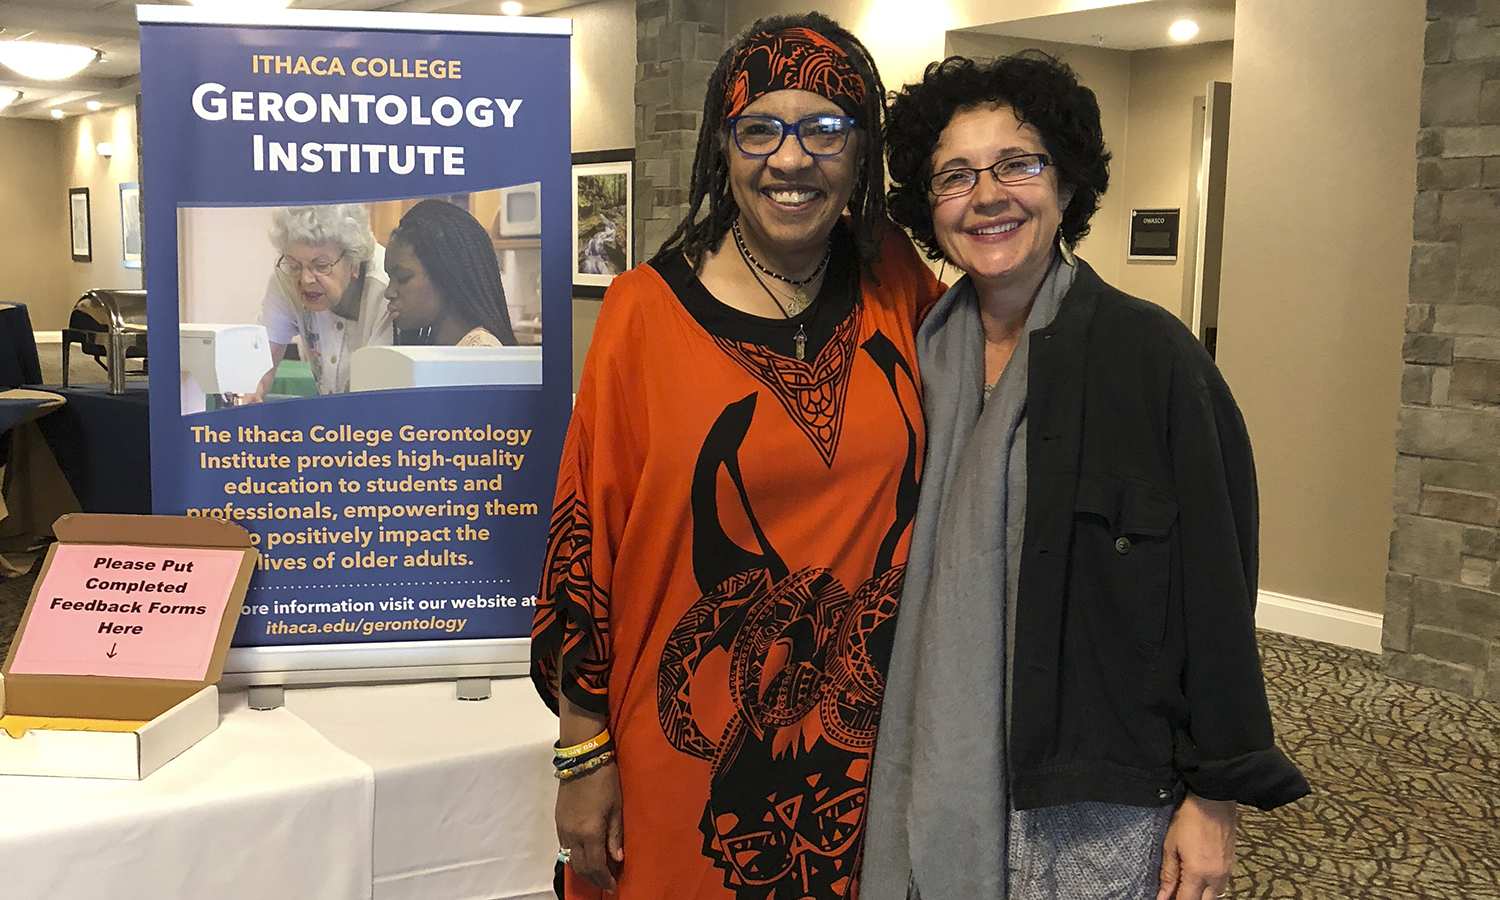 Director of Intercultural Affairs Alejandra Molina (right) poses with Ednita Wright, Ph.D, LCSW, CASAC and Professor of Human Services & Teacher Education, and Program Coordinator for the Alcohol & Substance Abuse Counseling Program at Onondaga Community College. Molina attended the End of Life Care and Cultural Competence Conference in July.